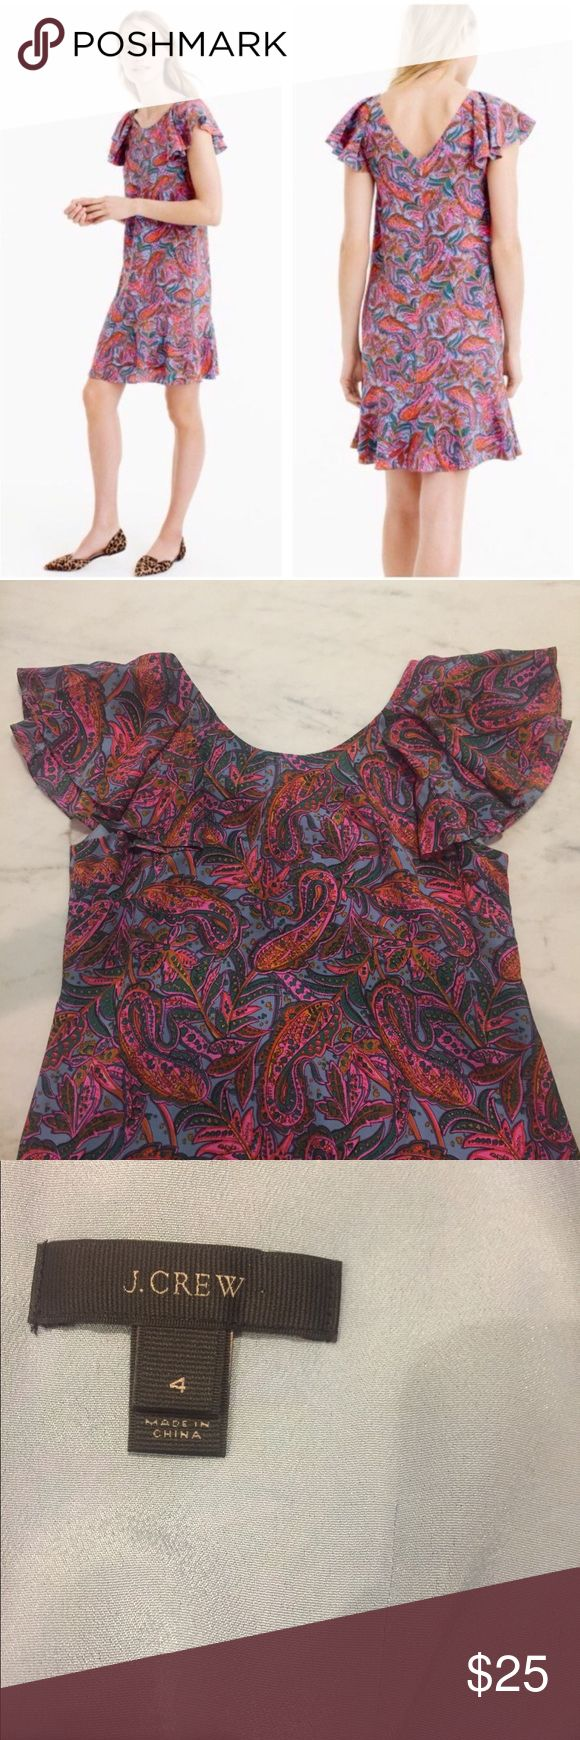 [J. Crew] 100% Silk Multicolor Paisley Dress Silk dress from J. Crew Fall 2016 collection. Style F4349. It's in perfect condition! Perfect for spring to wear to a wedding, party, or date night! J. Crew Dresses Mini